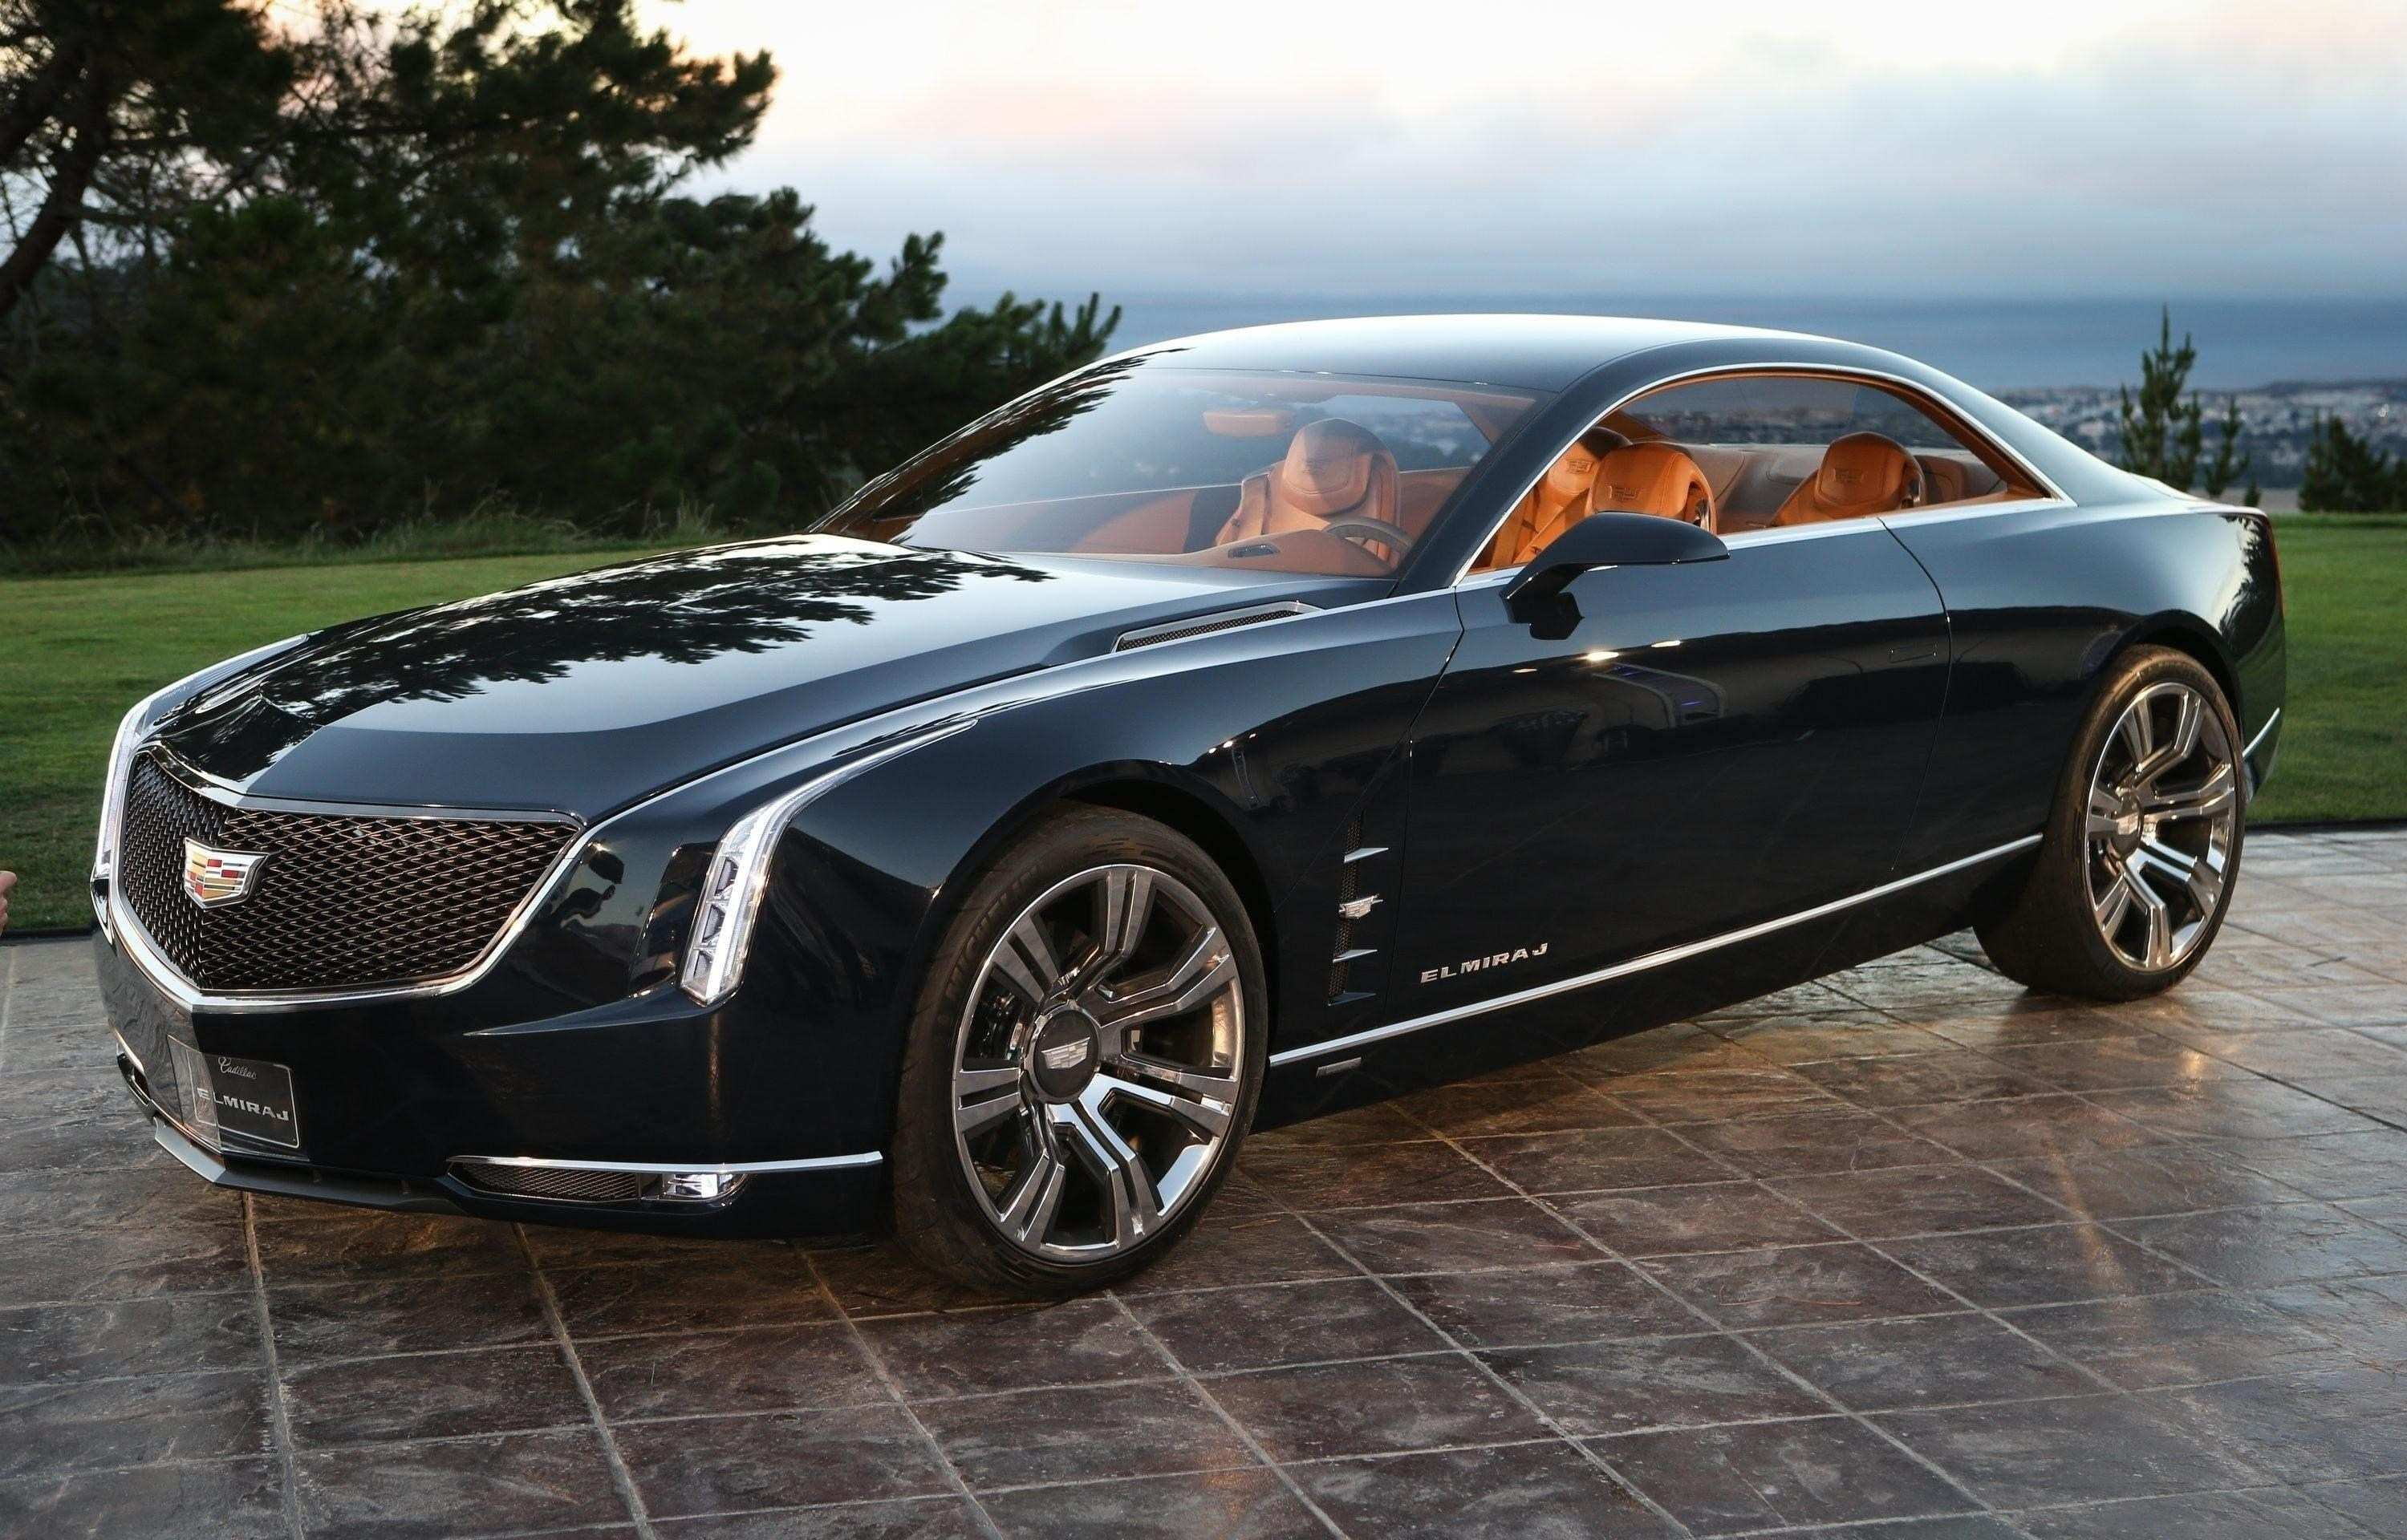 71 Gallery of 2019 Cadillac Deville Release Date with 2019 Cadillac Deville